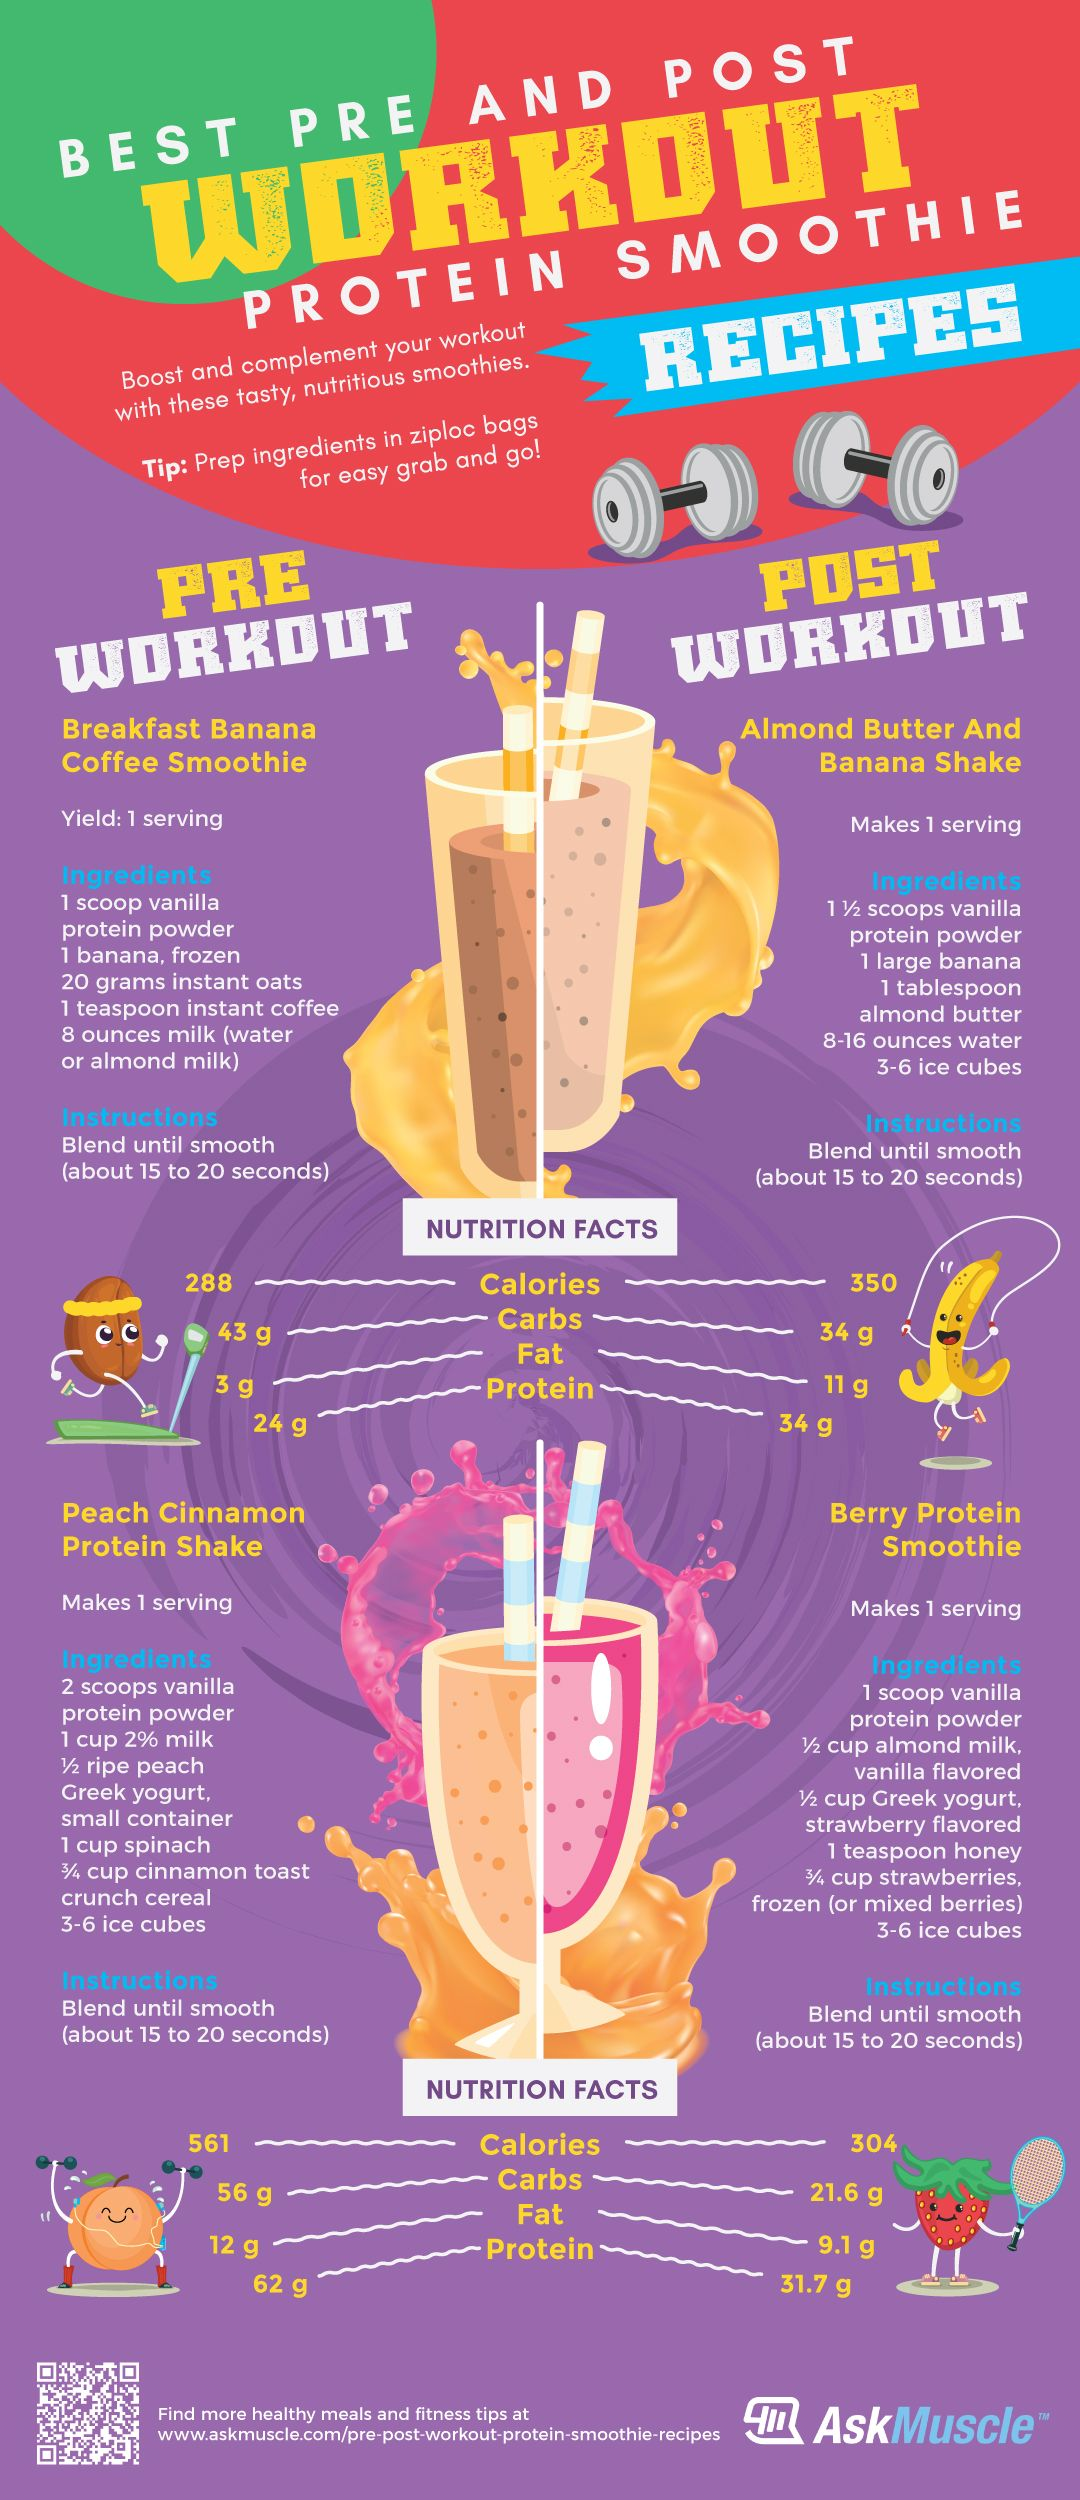 Best Pre and Post Workout Protein Smoothie Recipes [INFOGRAPHIC] #proteinshakes